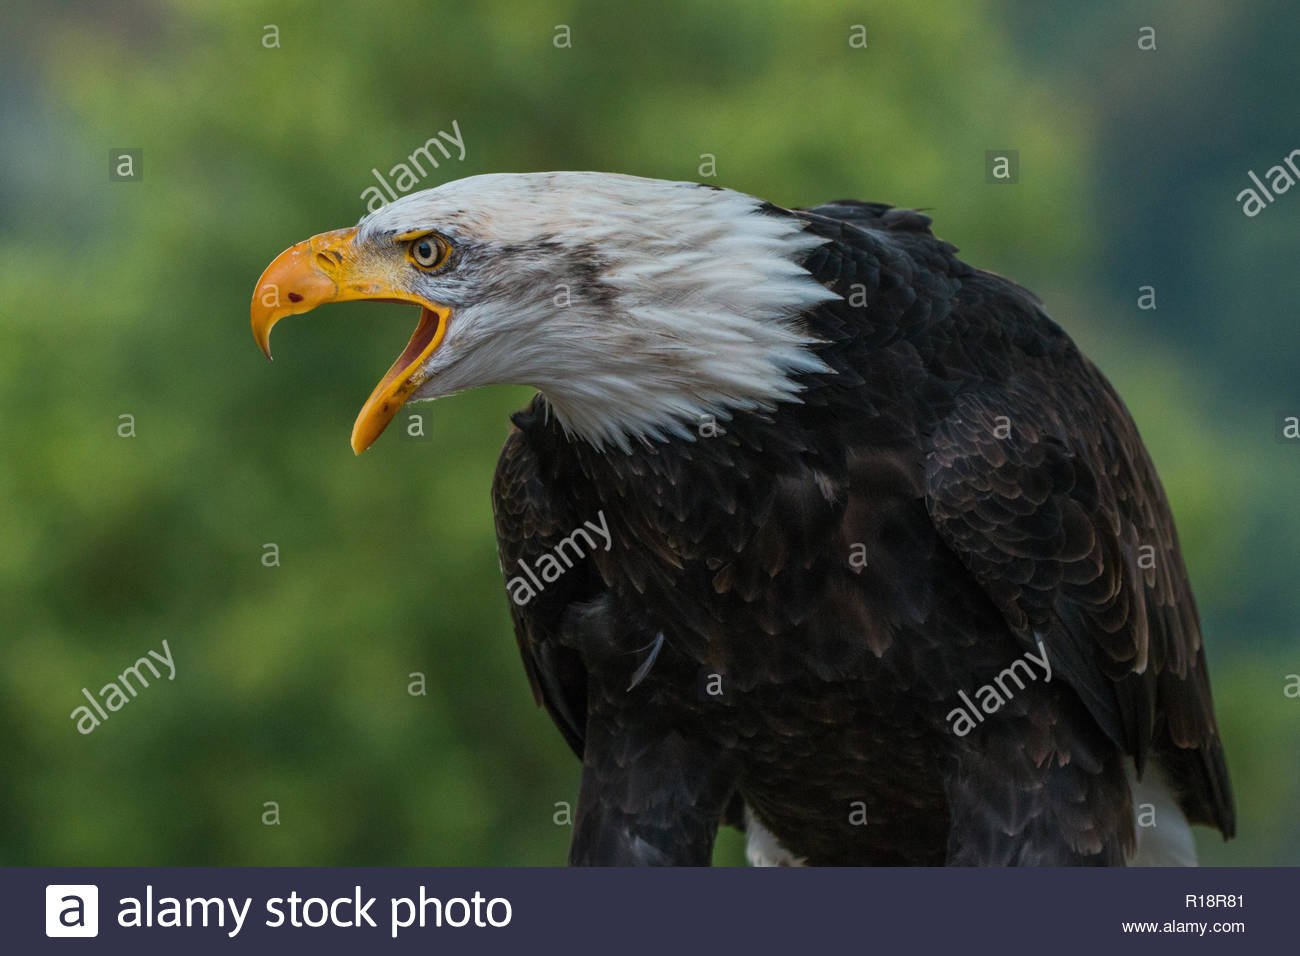 The Bald Eagle is an unforgettable animal. Its white head and tail, eight-foot wingspread, piercing eyes, massive hooked beak and powerful talons make Stock Photo